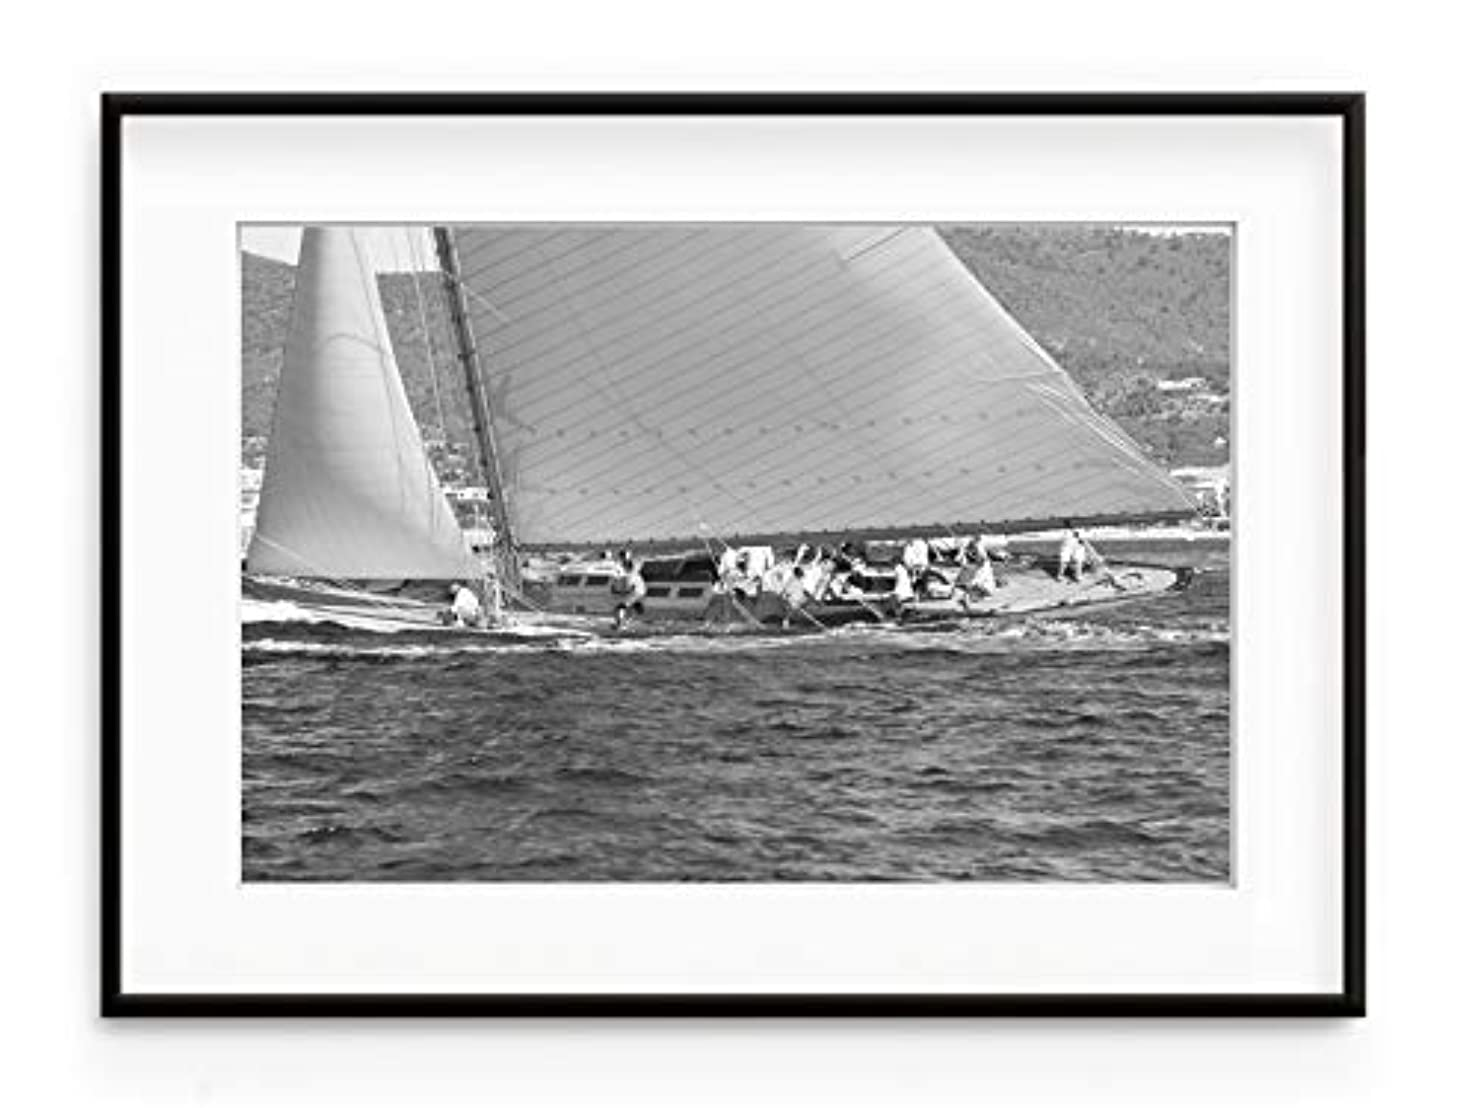 Black and White Sailing Boat, Natural Solid Oak Frame, with Mount, Multicolored, 70x100